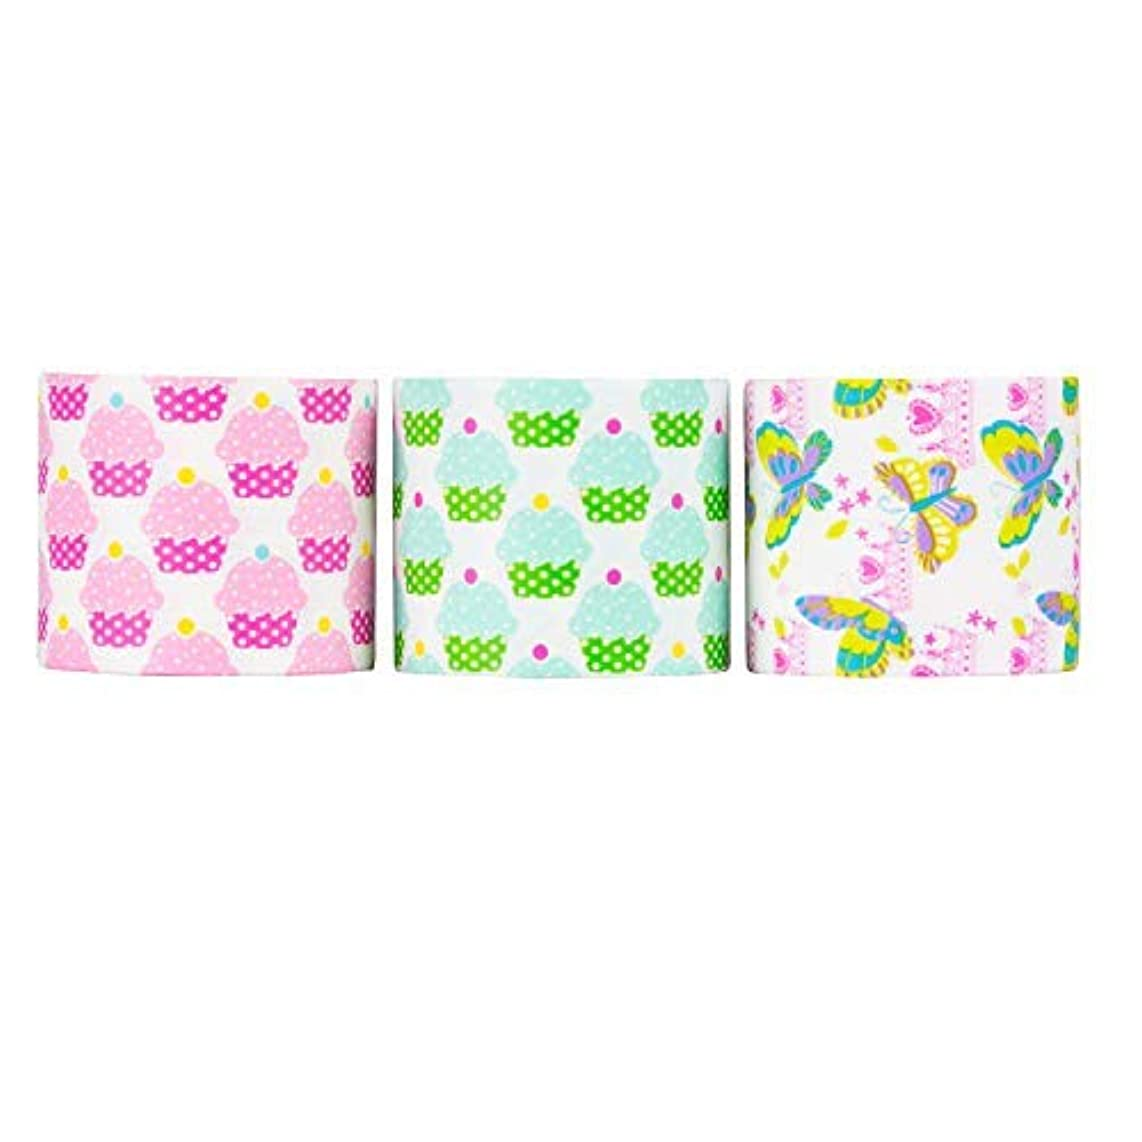 Design Duct Tape 48mm x 16 Feet - Kids Fun Extra Strong Printed Arts & Crafts Multi Pack - by Playlearn (Fresh Cupcakes)